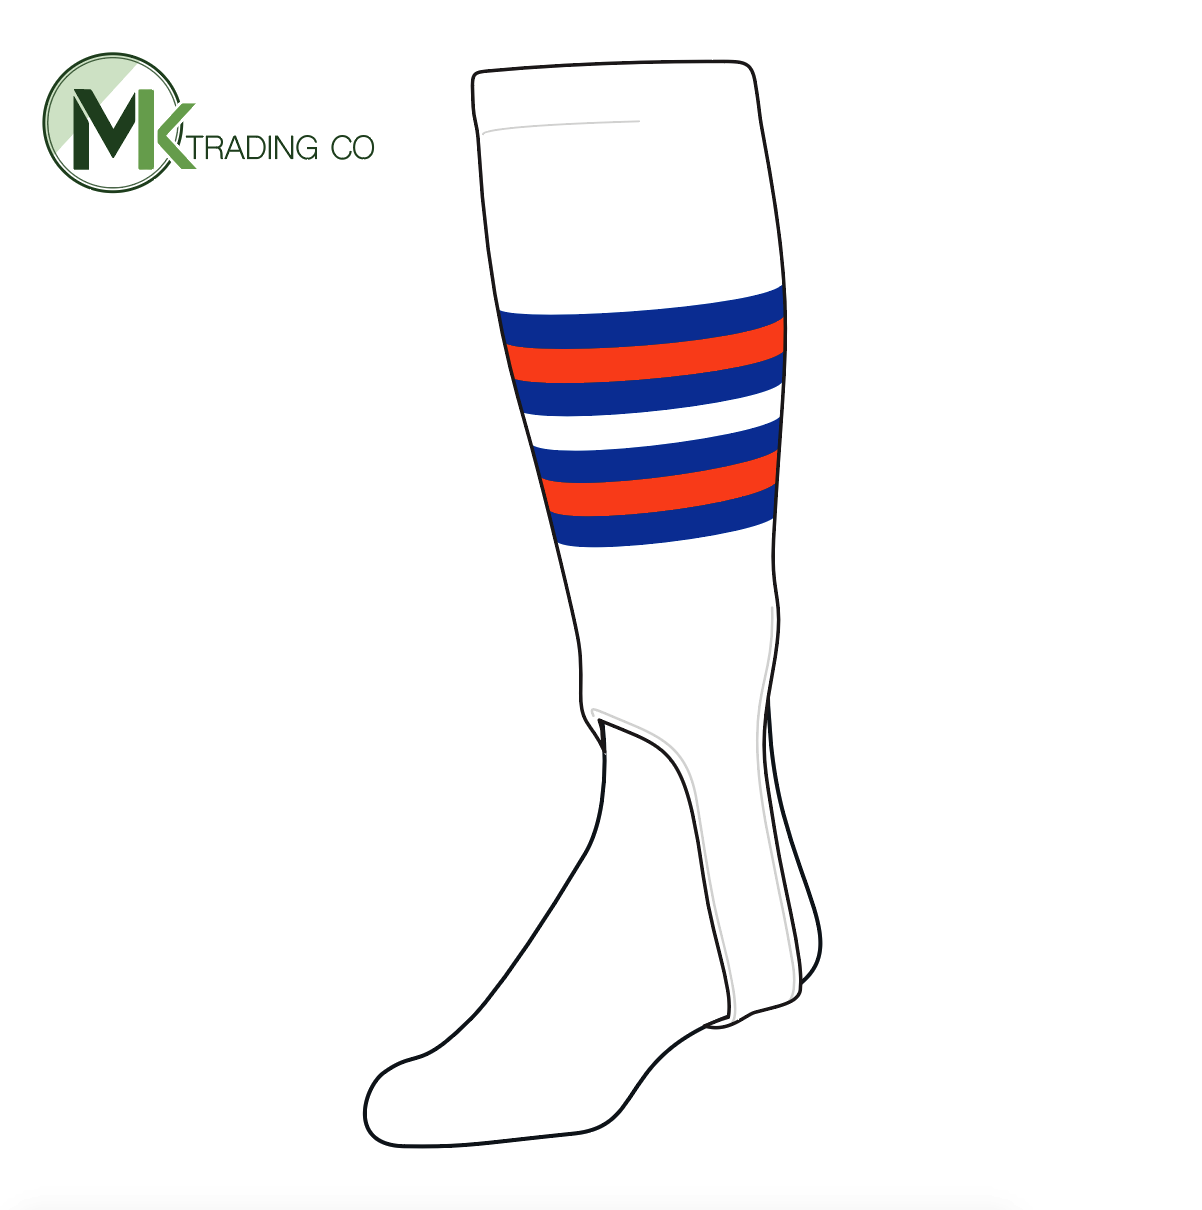 TCK Baseball Stirrups Medium (200I, 5in) White, Royal, Orange